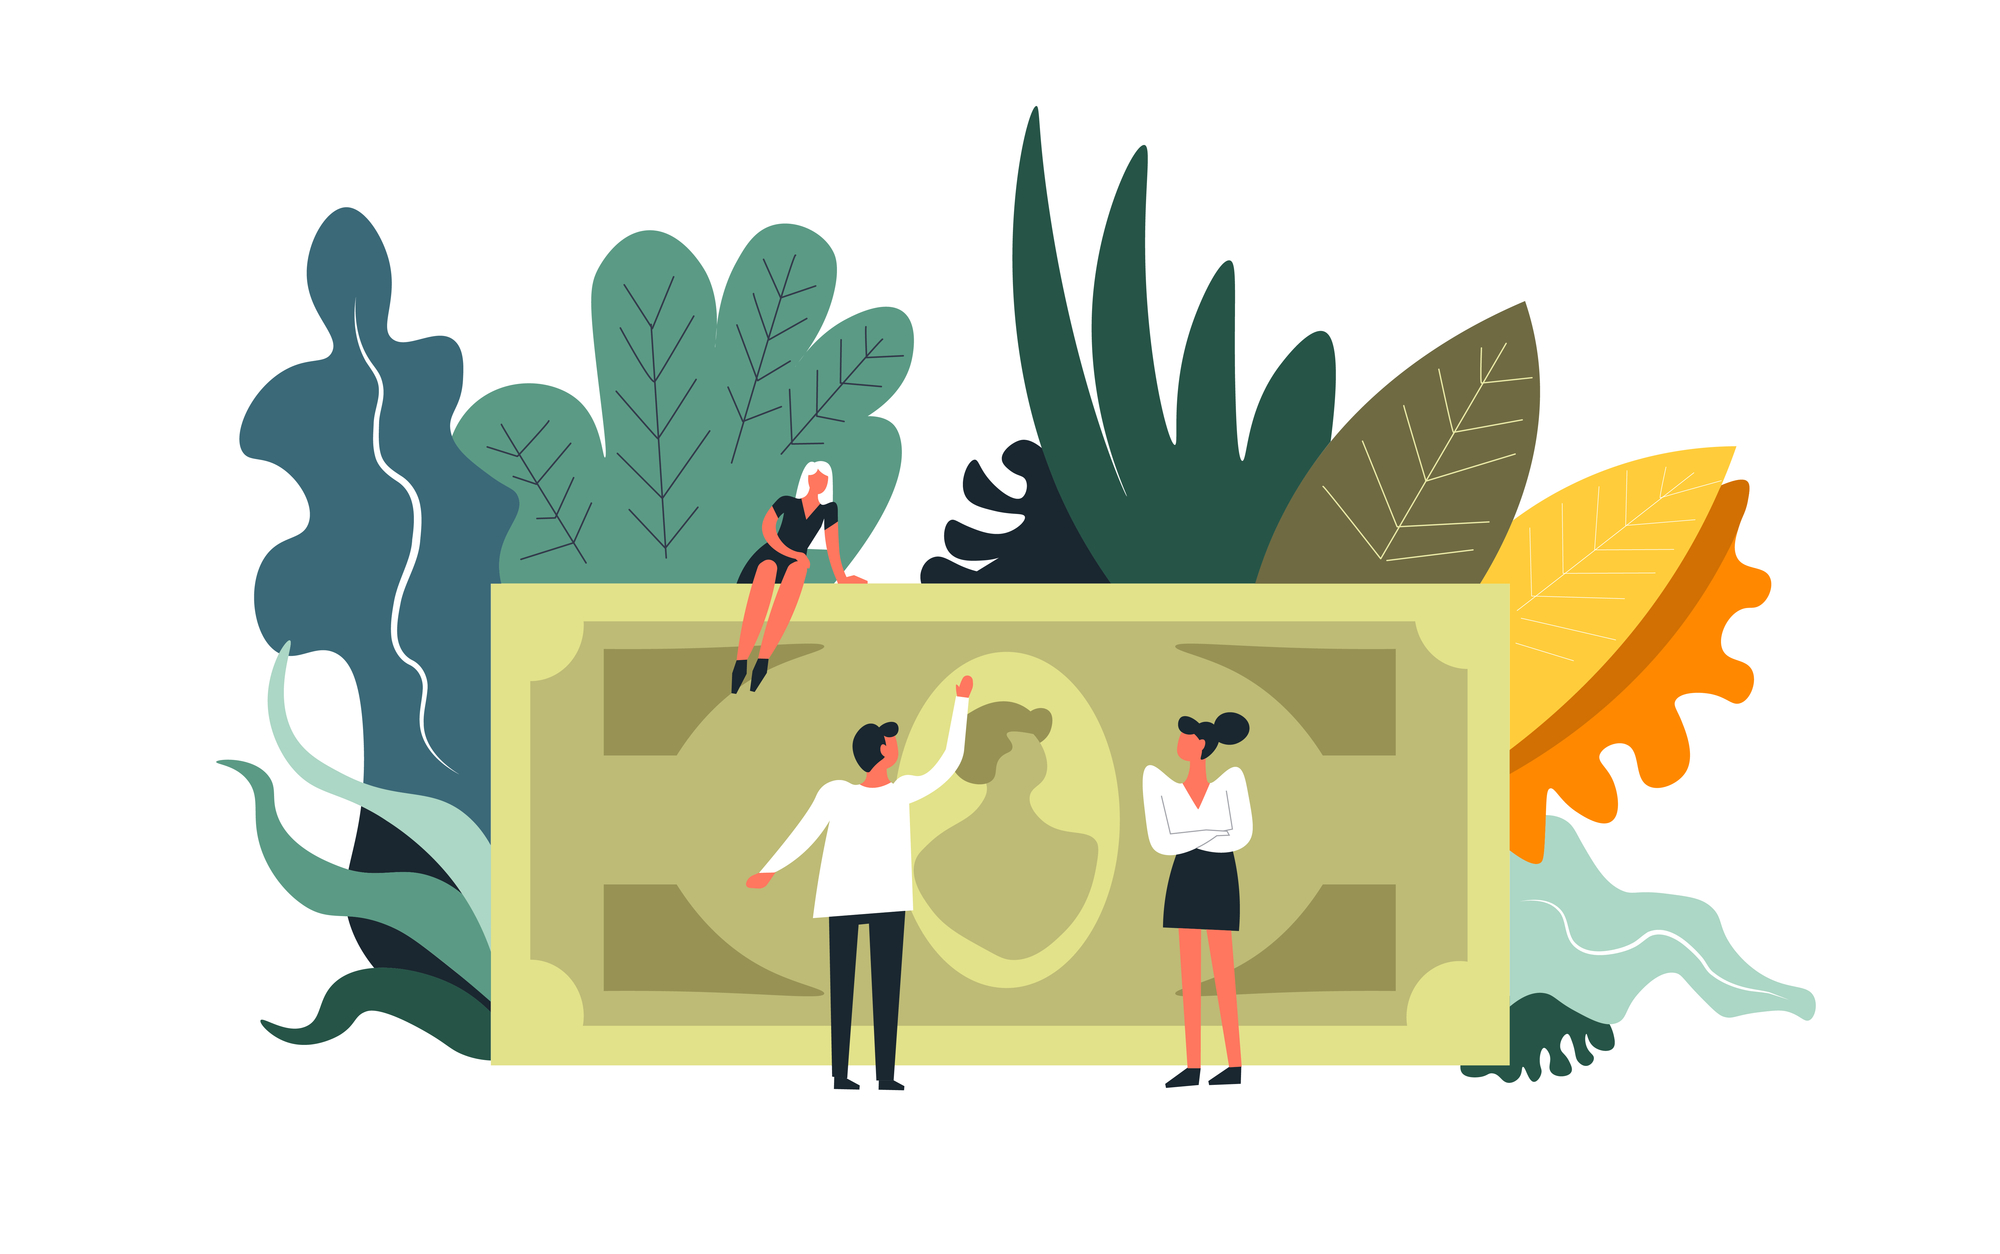 illustration of people looking up at a giant money note